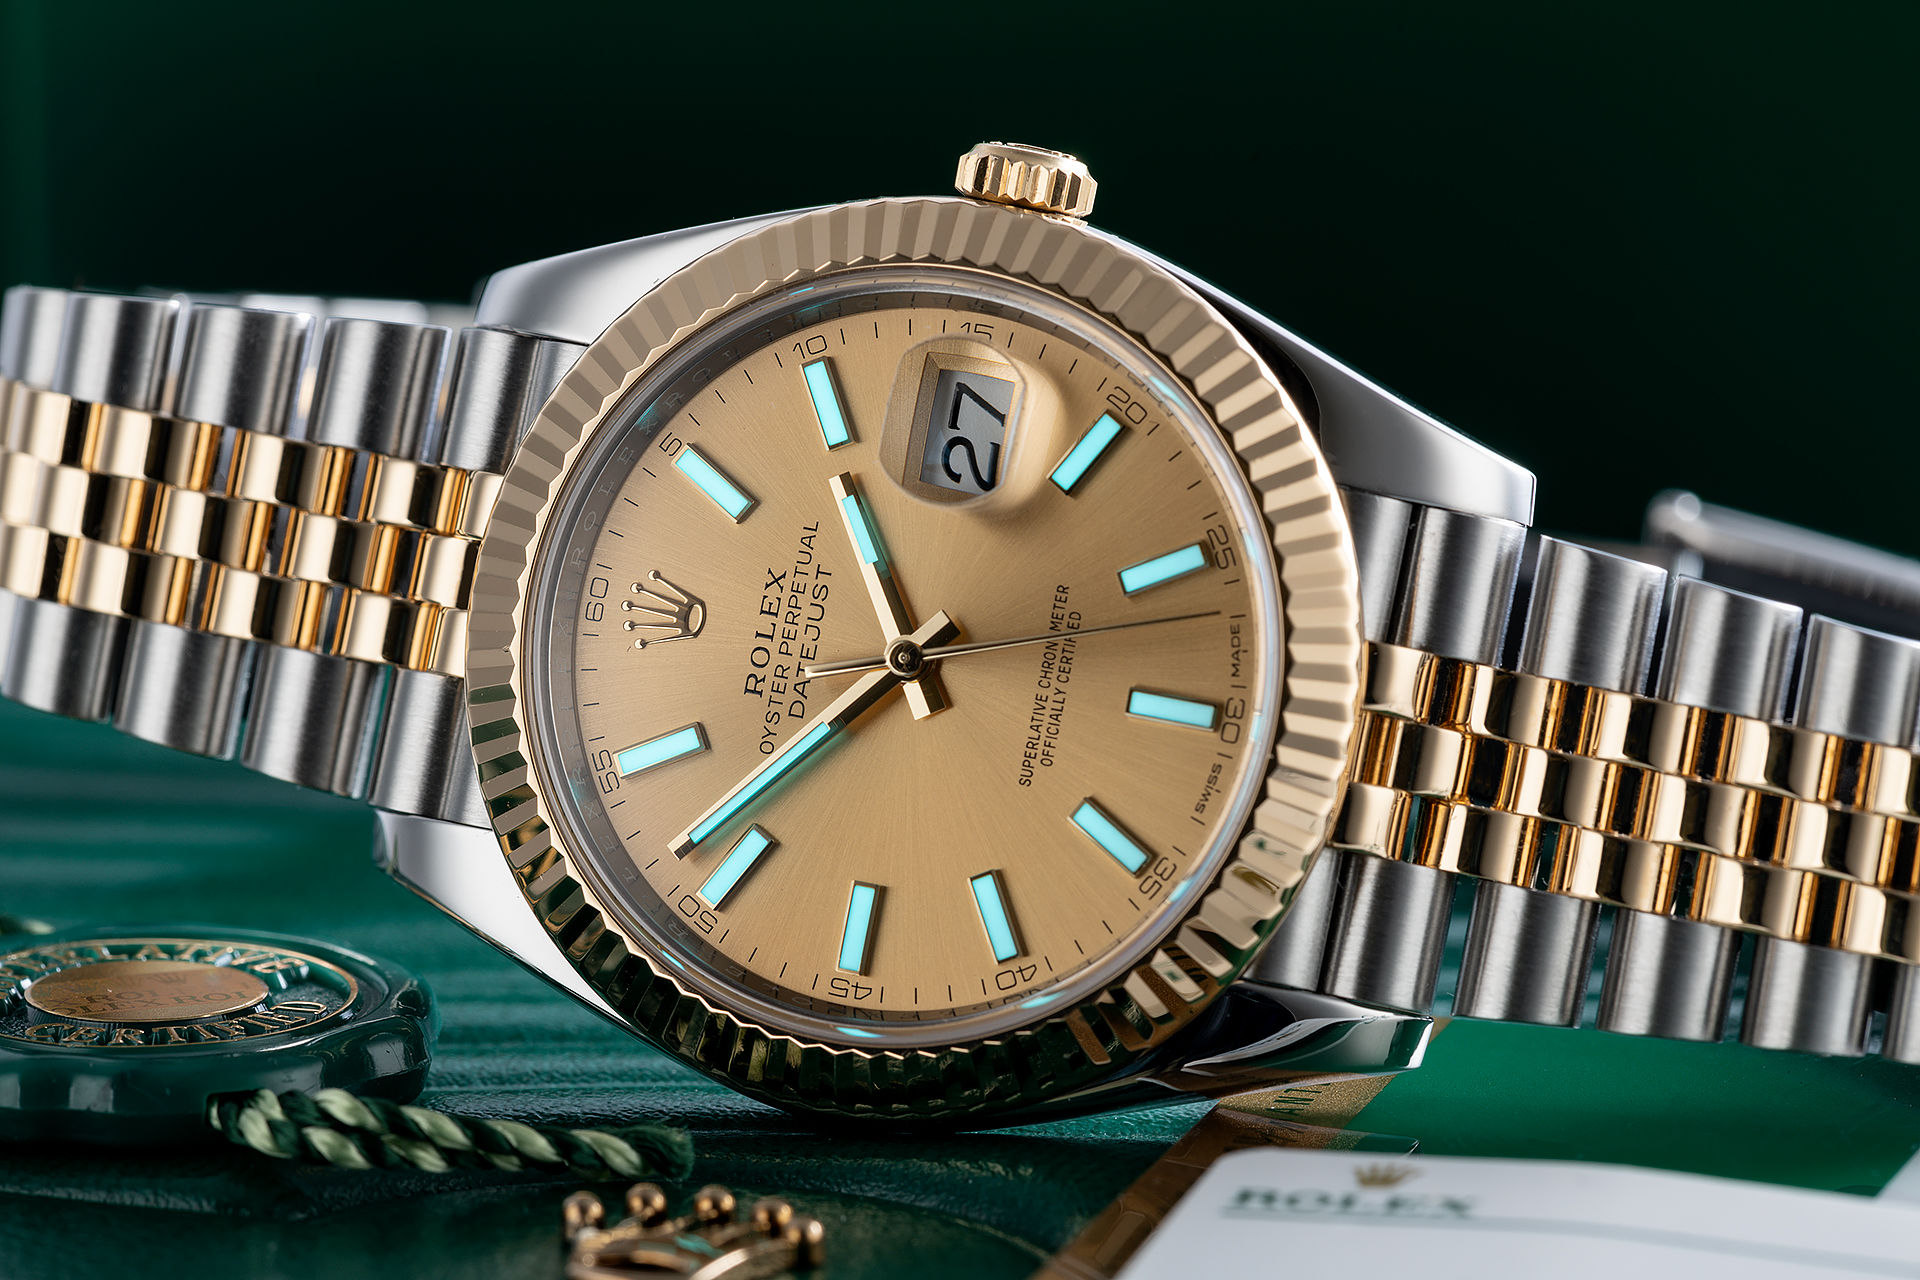 ref 126333 | 'New Model' 5 Year Rolex Warranty  | Rolex Datejust 41